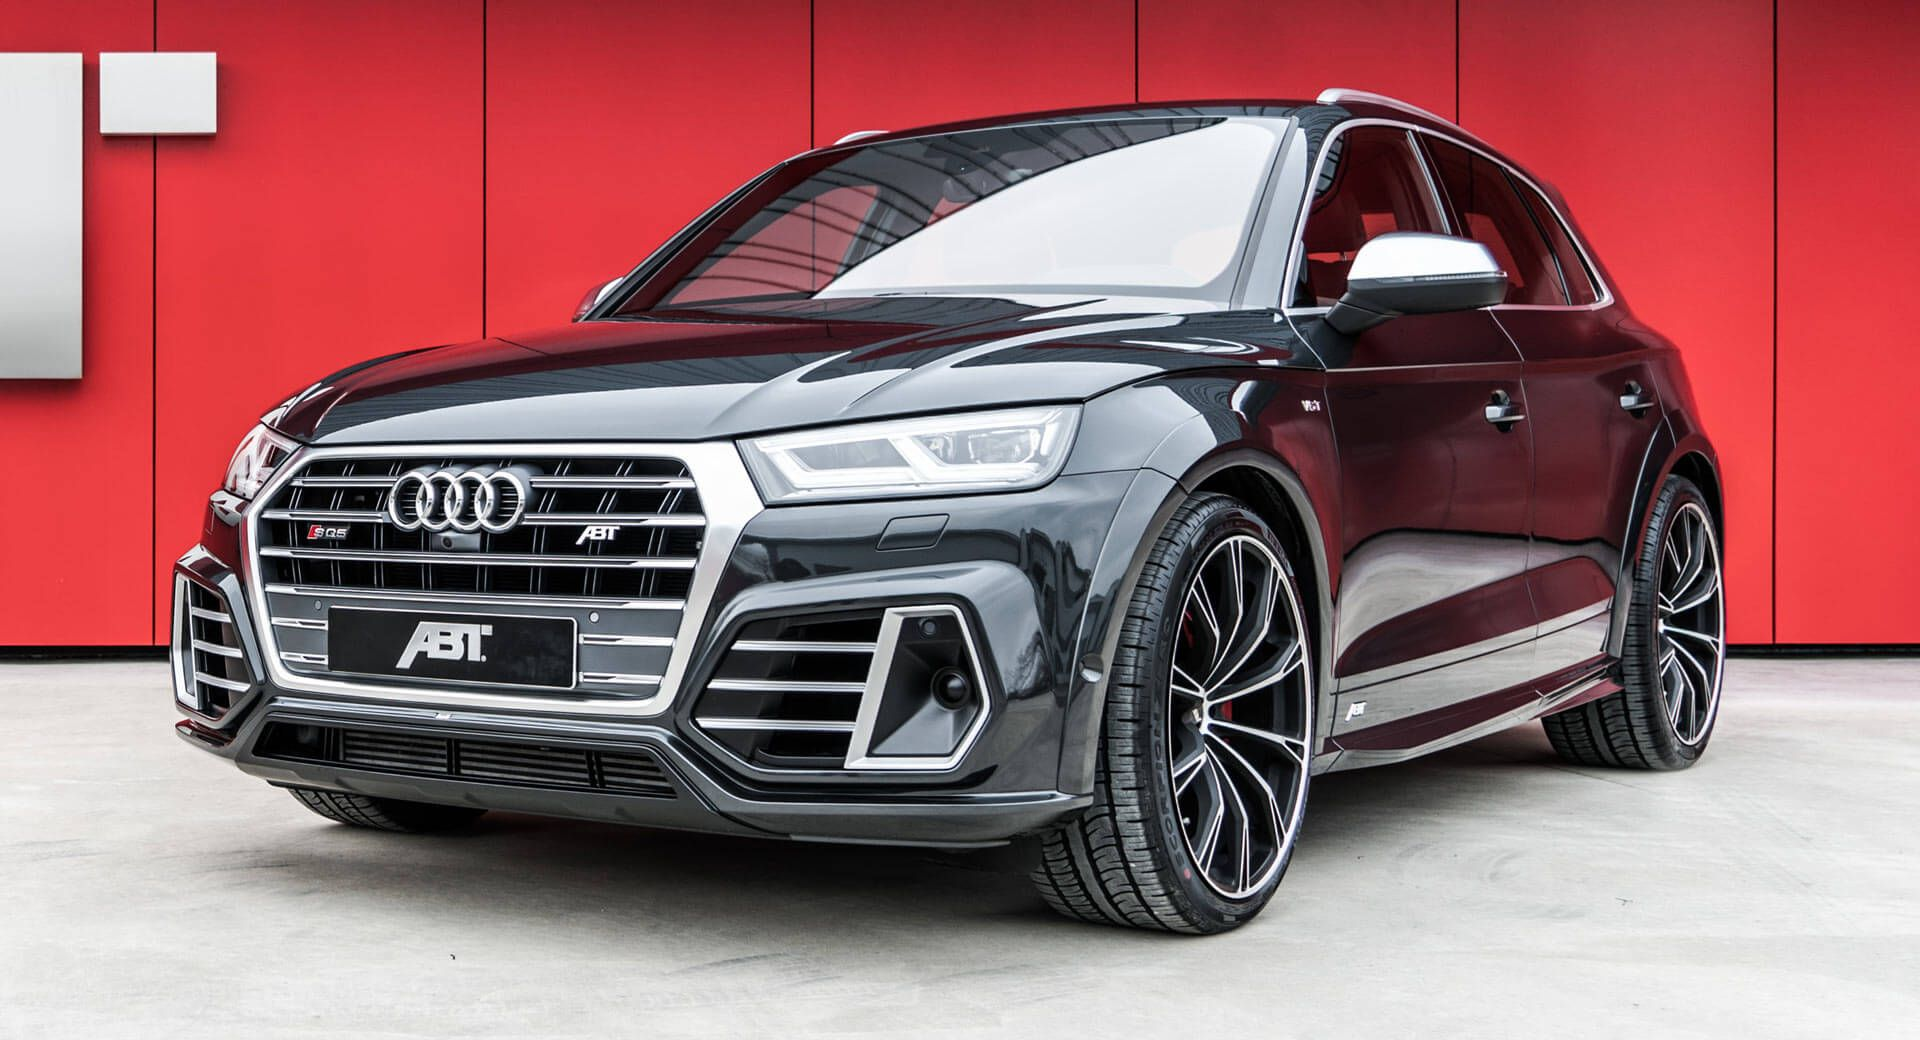 Audi Sq5 Dolled Up By Abt With Wide Body Kit And More Power Carscoops Audi Sq5 Audi Sports Car